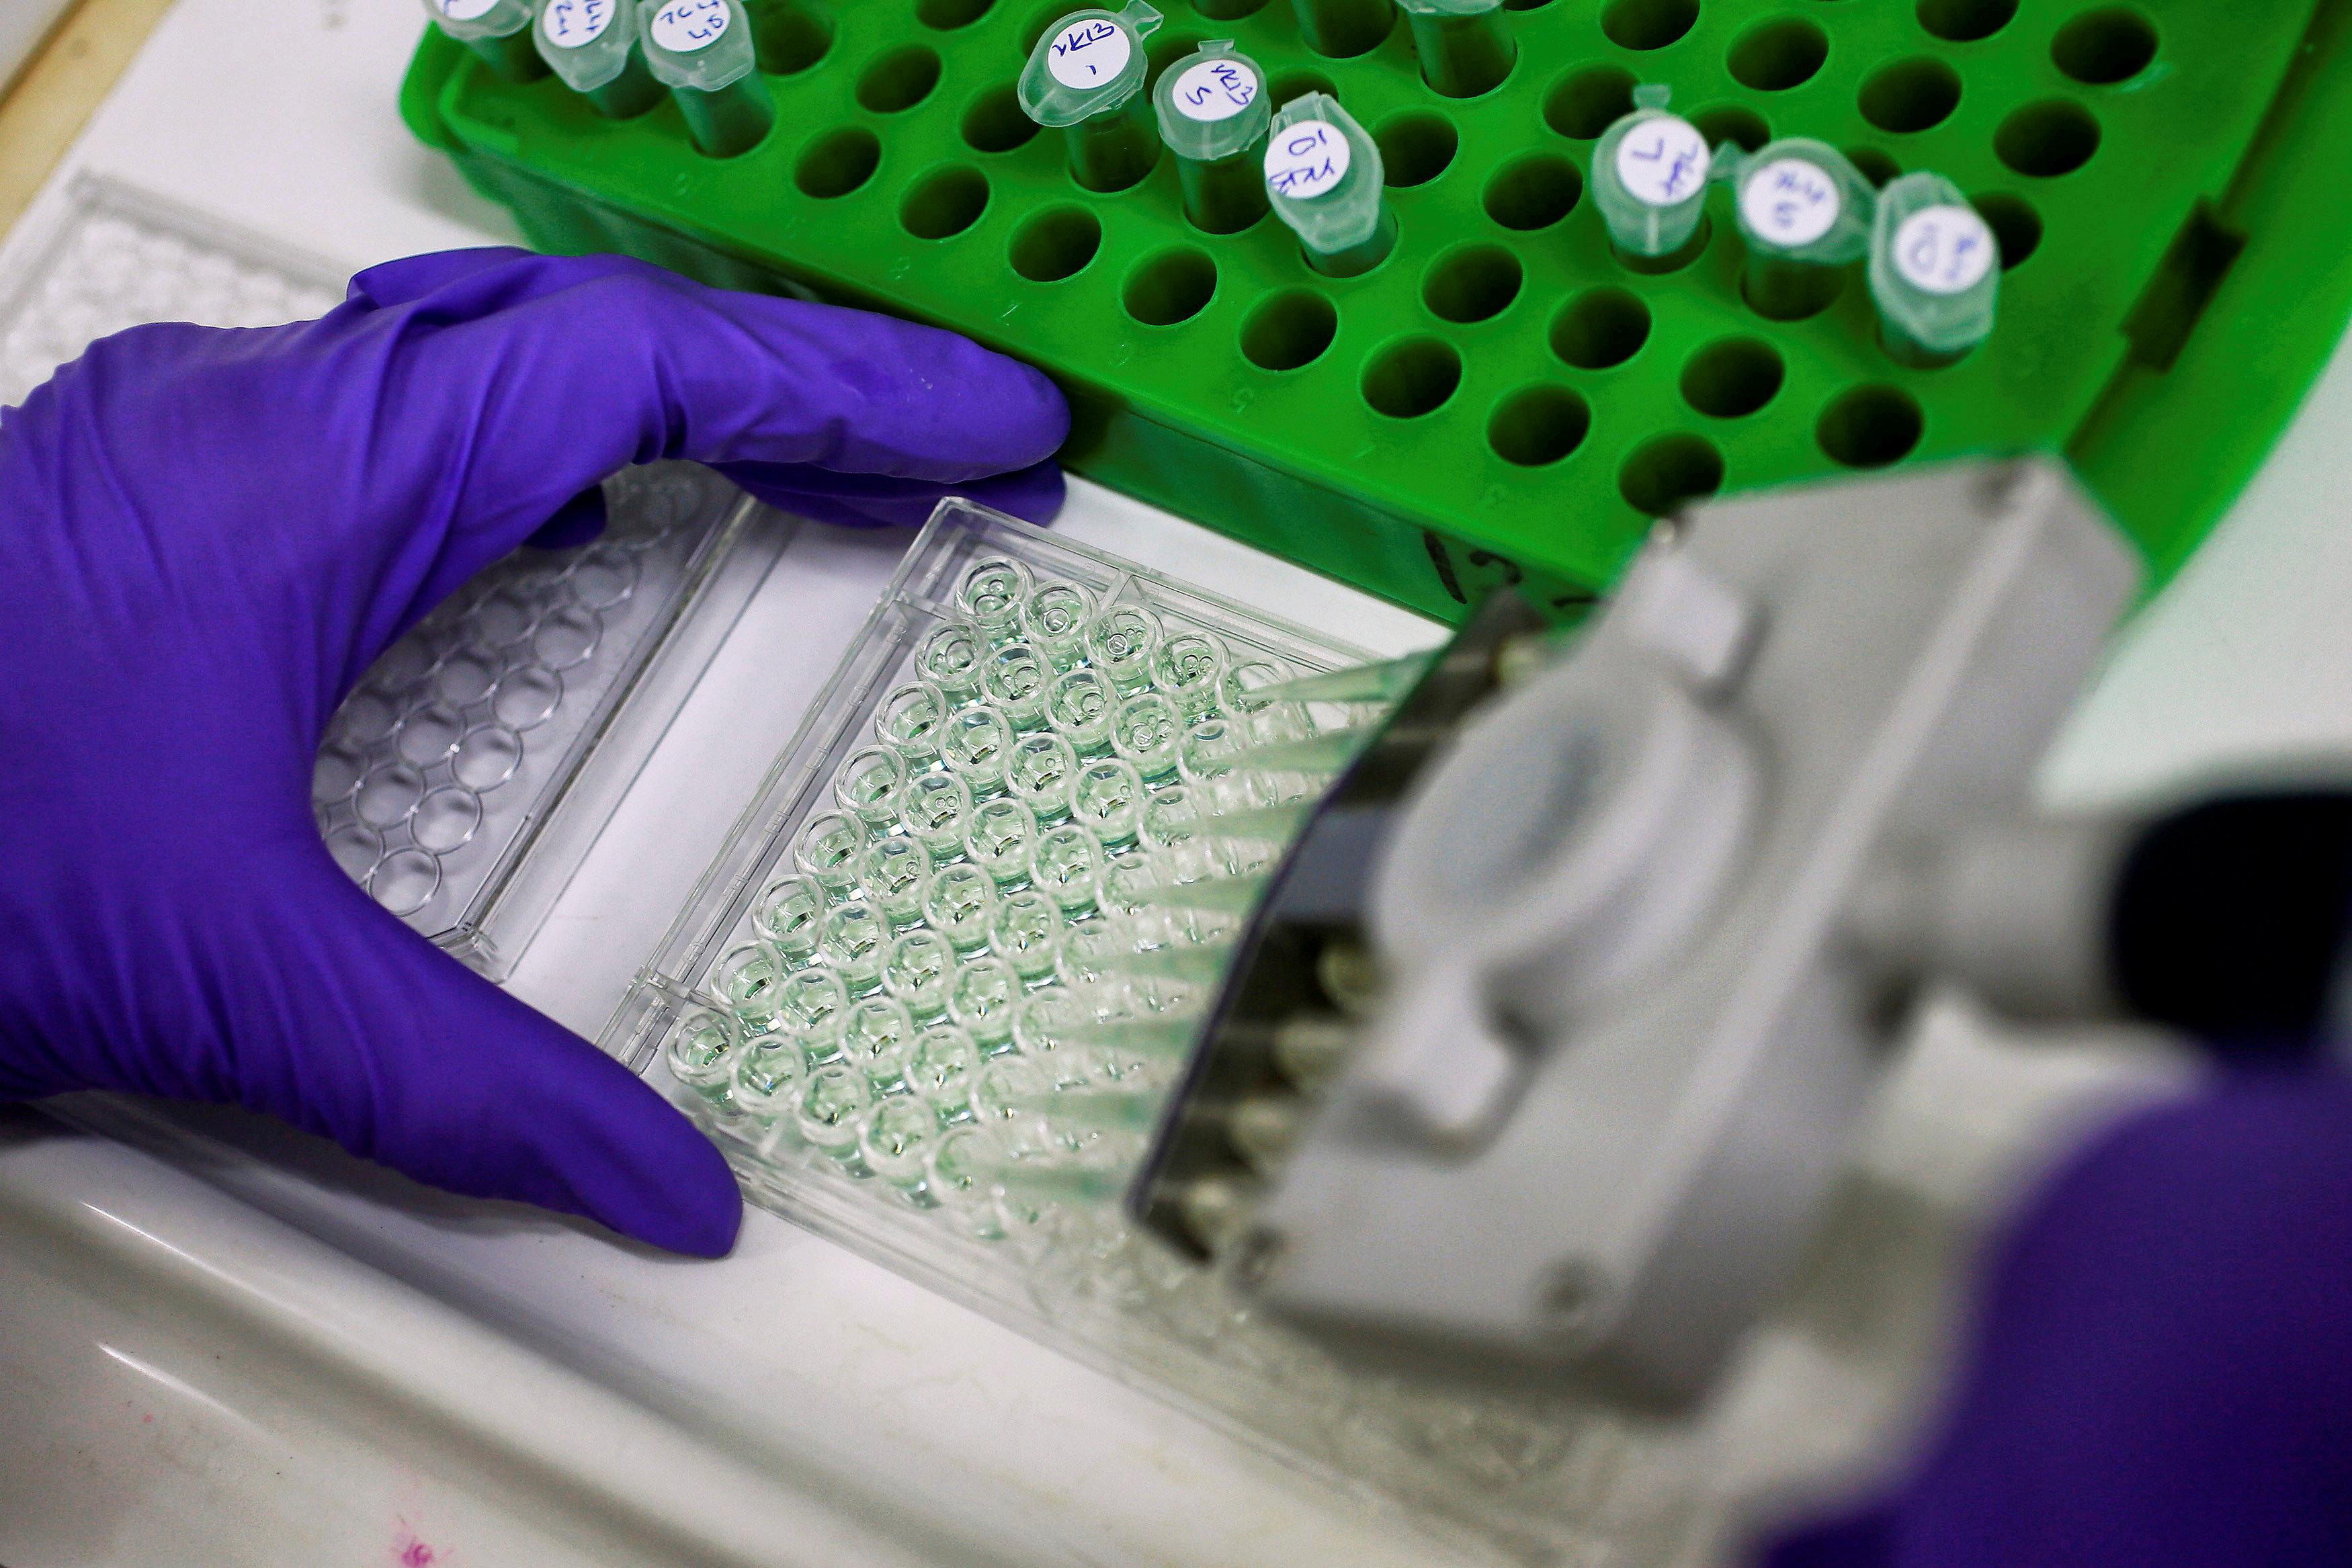 A scientist prepares protein samples for analysis in a lab at the Institute of Cancer Research in Sutton, Britain, July 15, 2013.   Stefan Wermuth